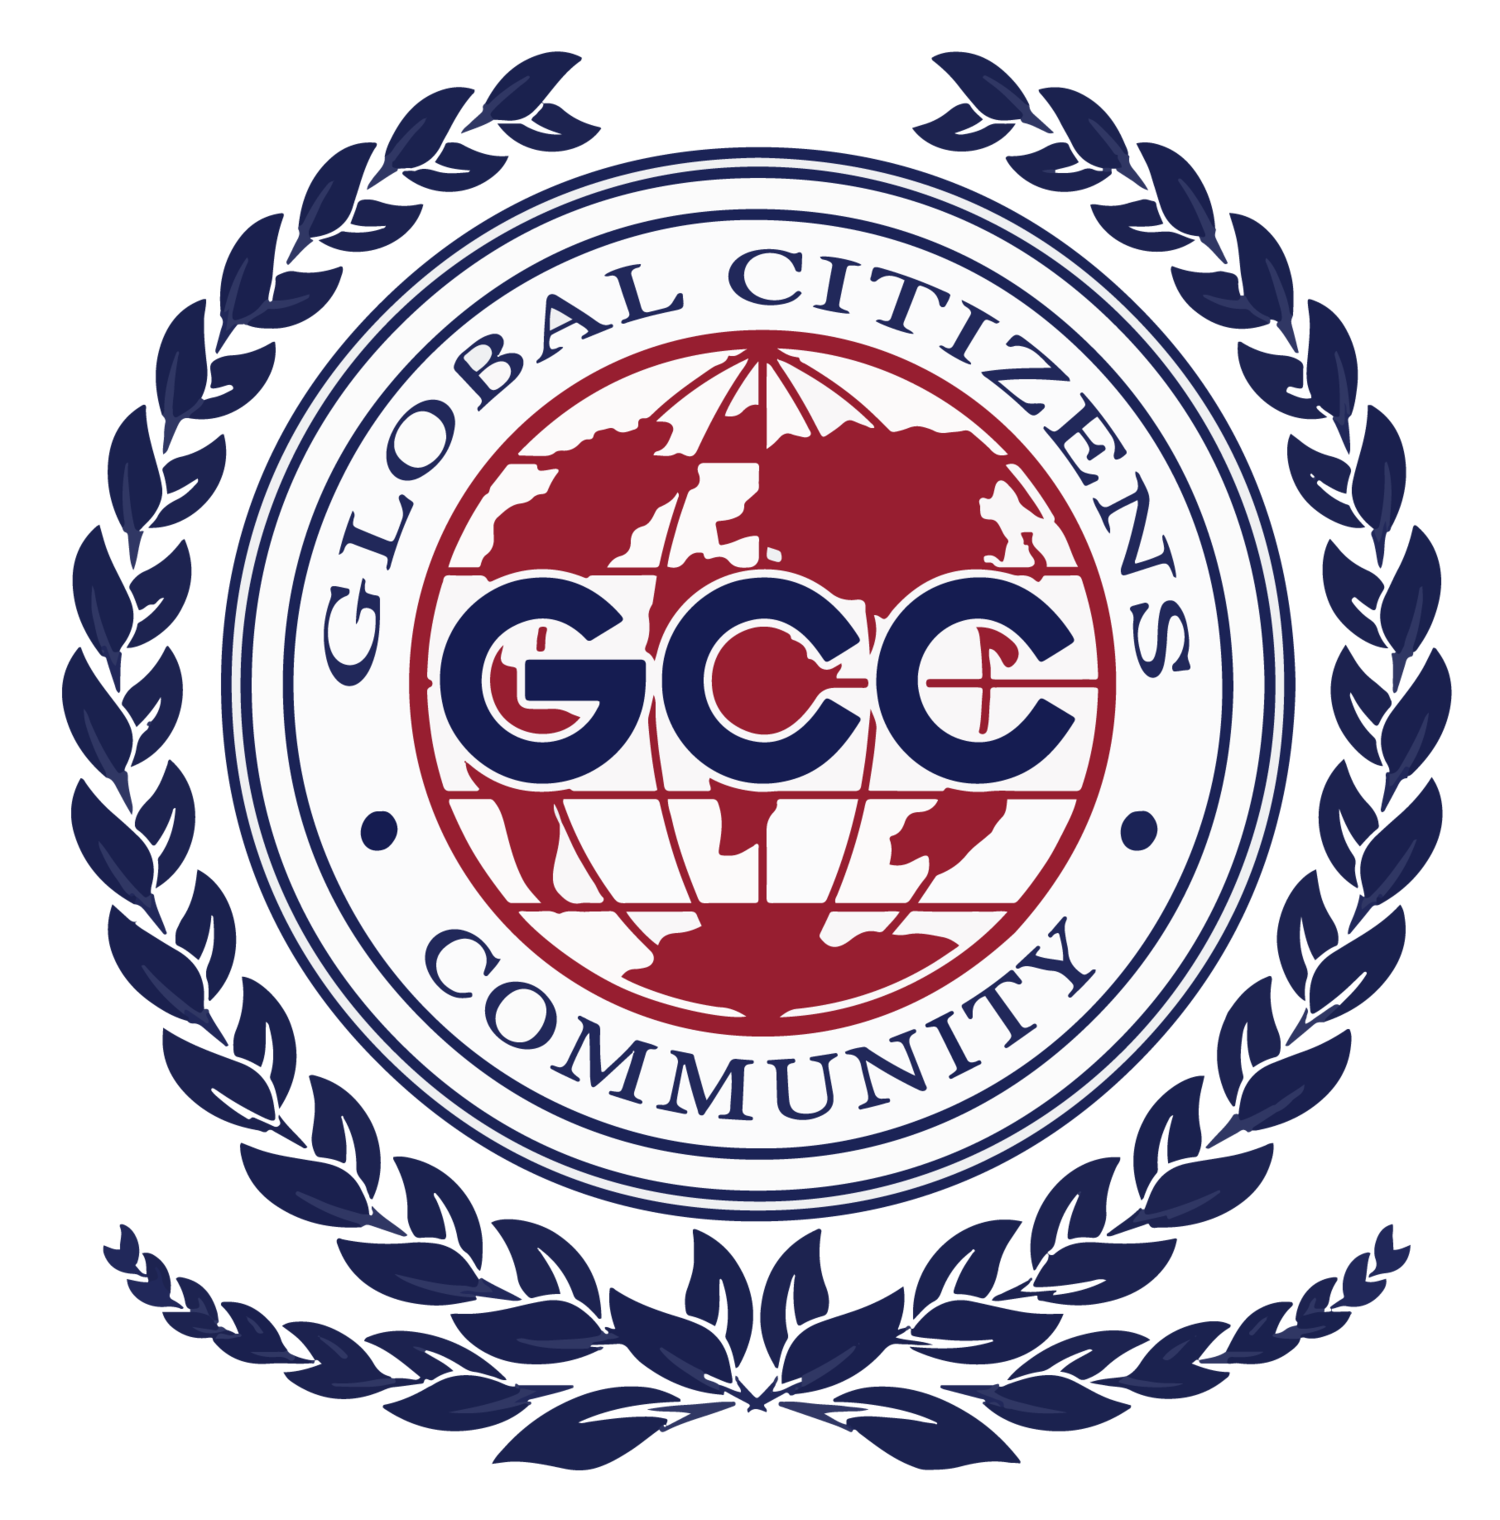 Global Citizens Community